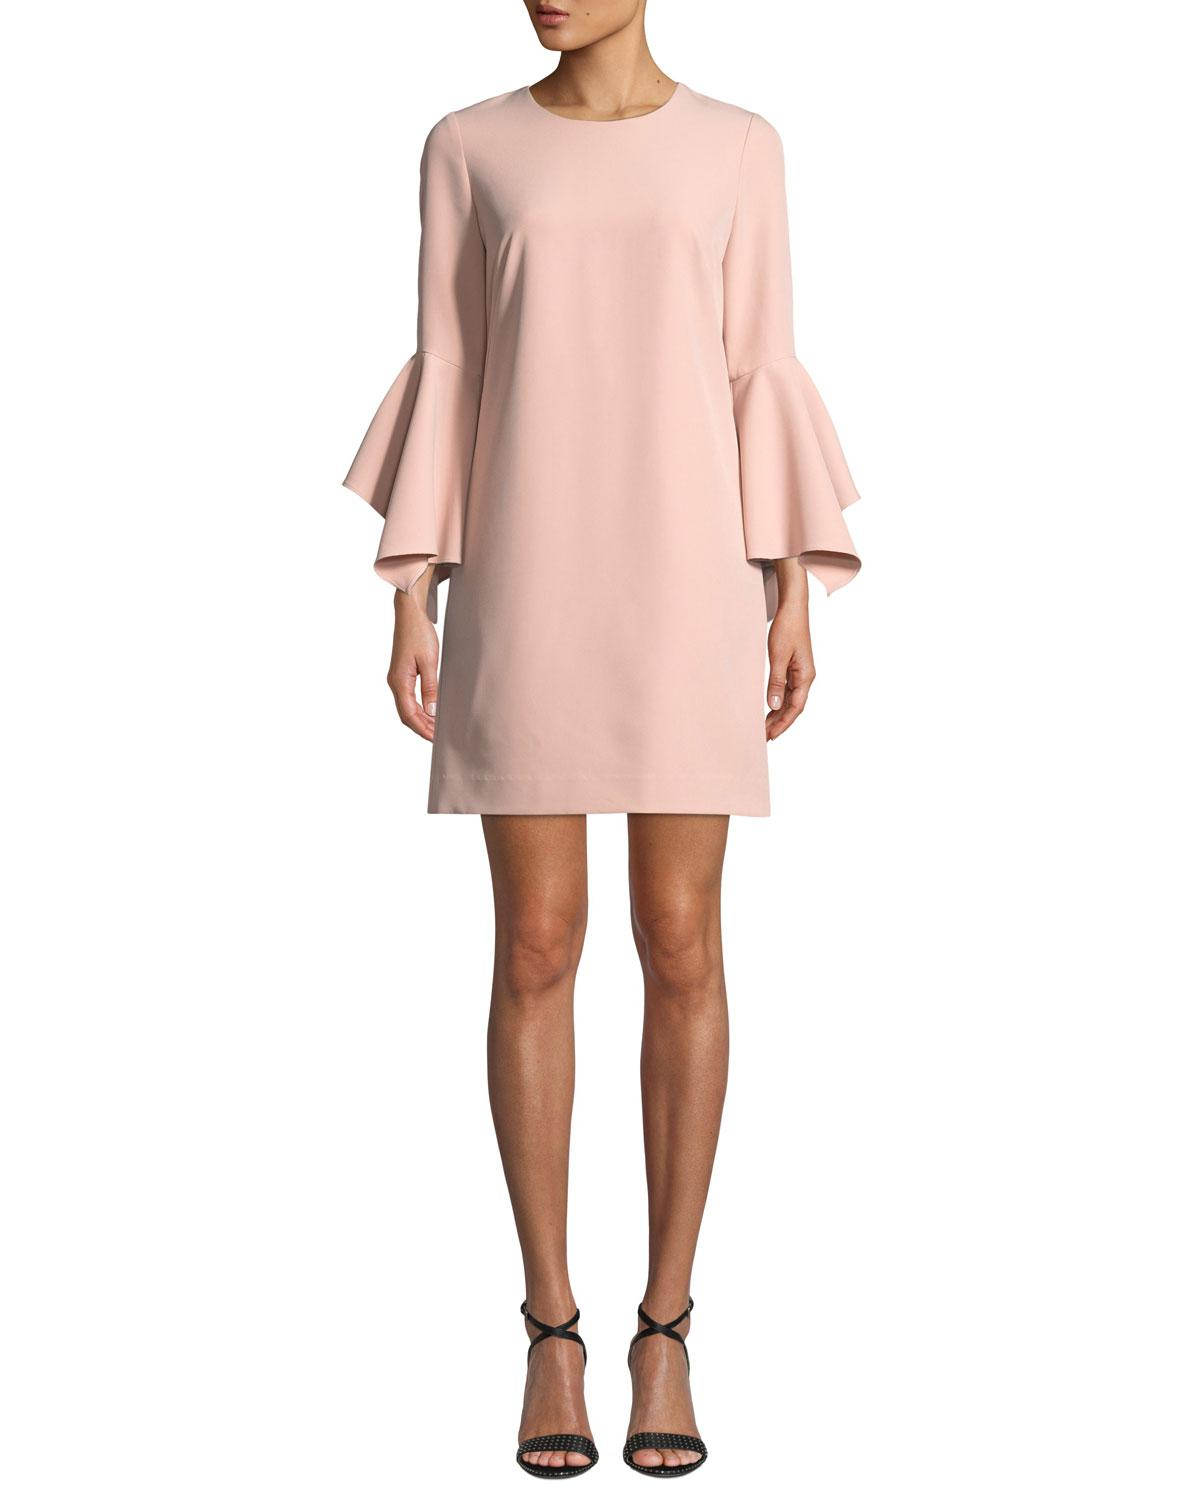 ab89c904374 Lyst - MILLY Rachel Italian Cady Bell-sleeve Dress in Pink - Save 51%